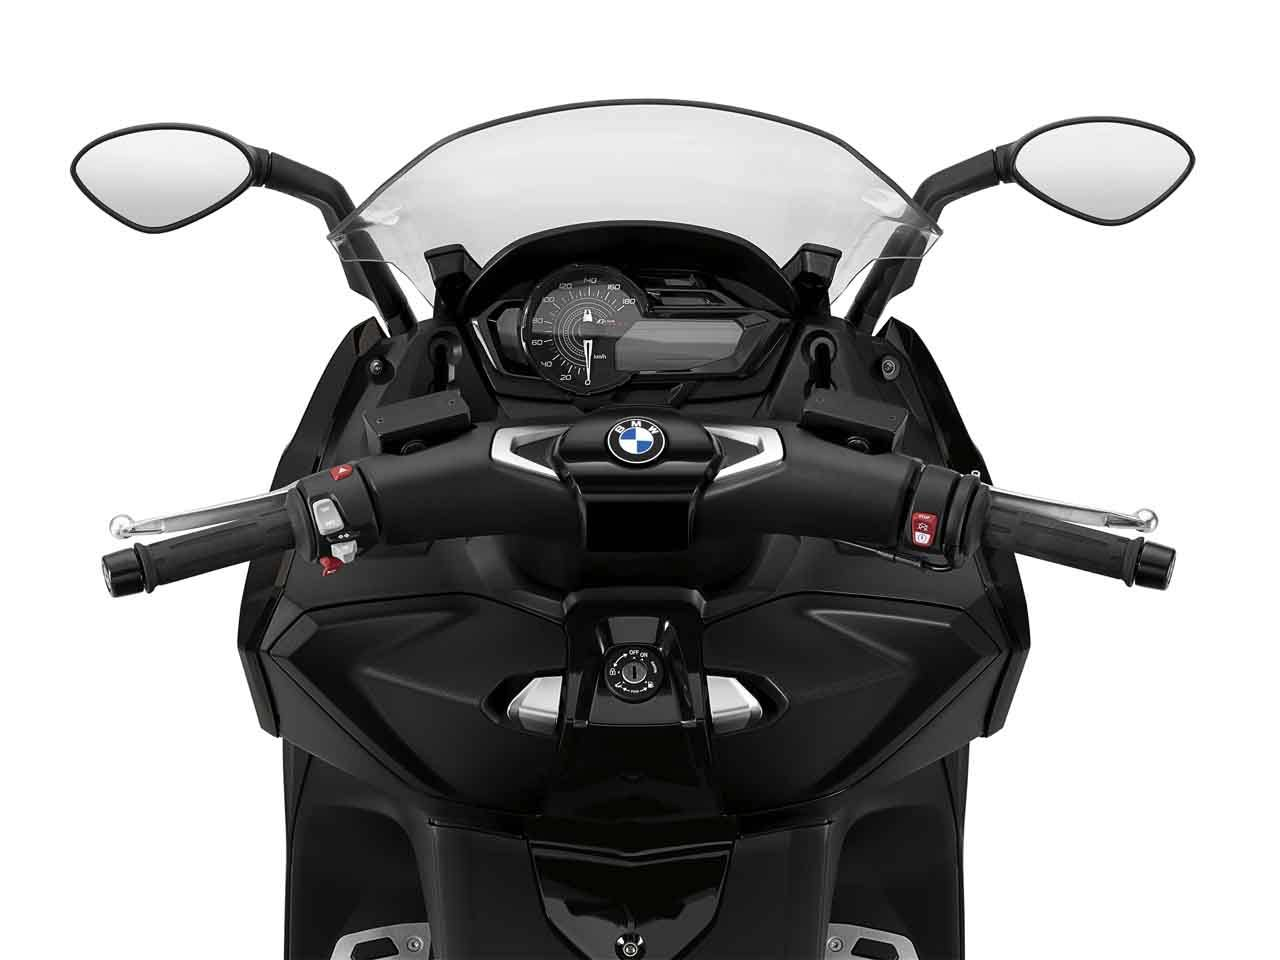 2017 BMW C 650 Sport in Port Clinton, Pennsylvania